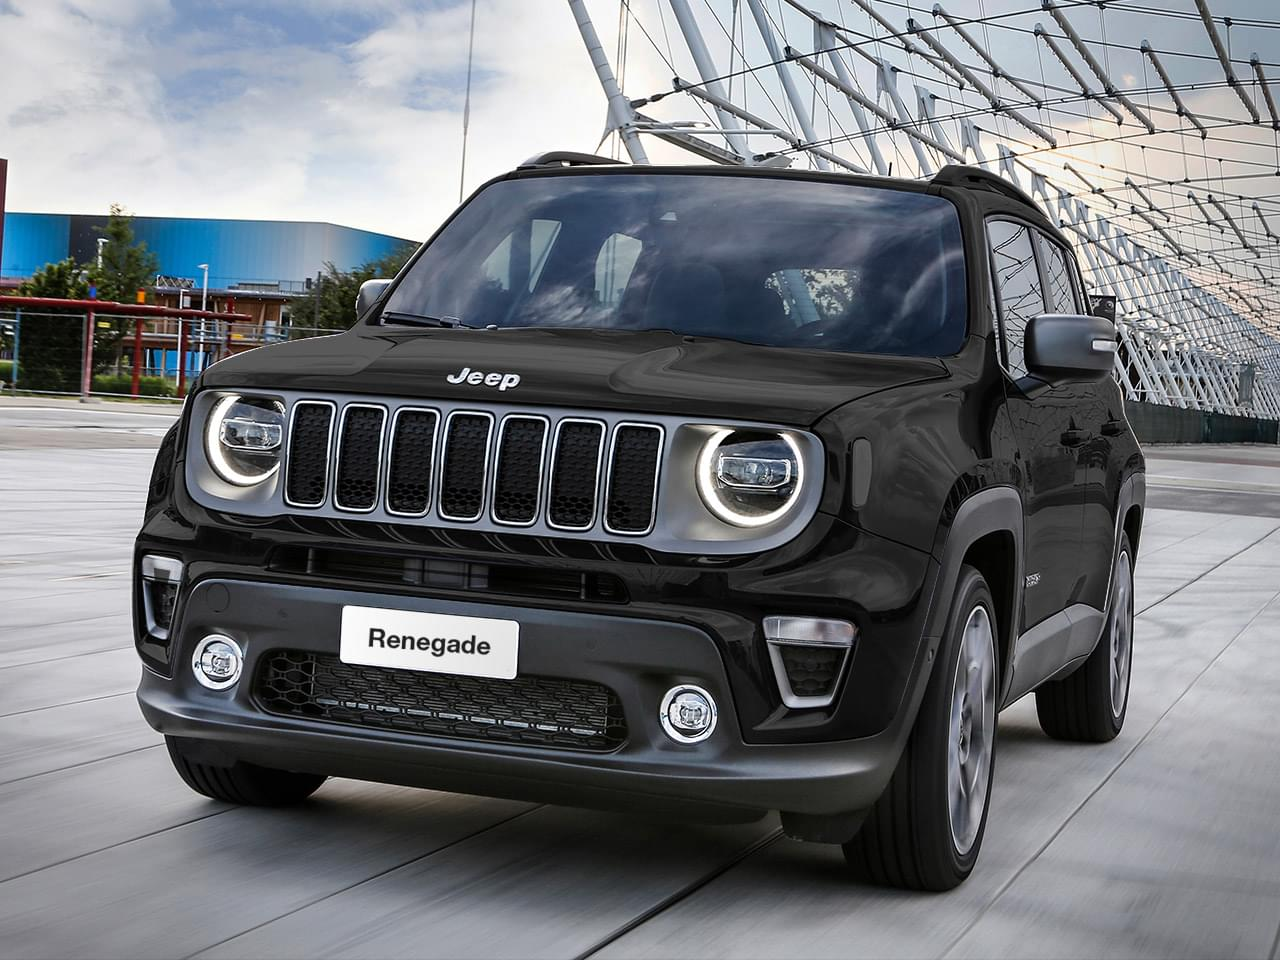 Jeep Renegade Limited MY20 1.3 T-GDI 4x2 AUTOMATIK